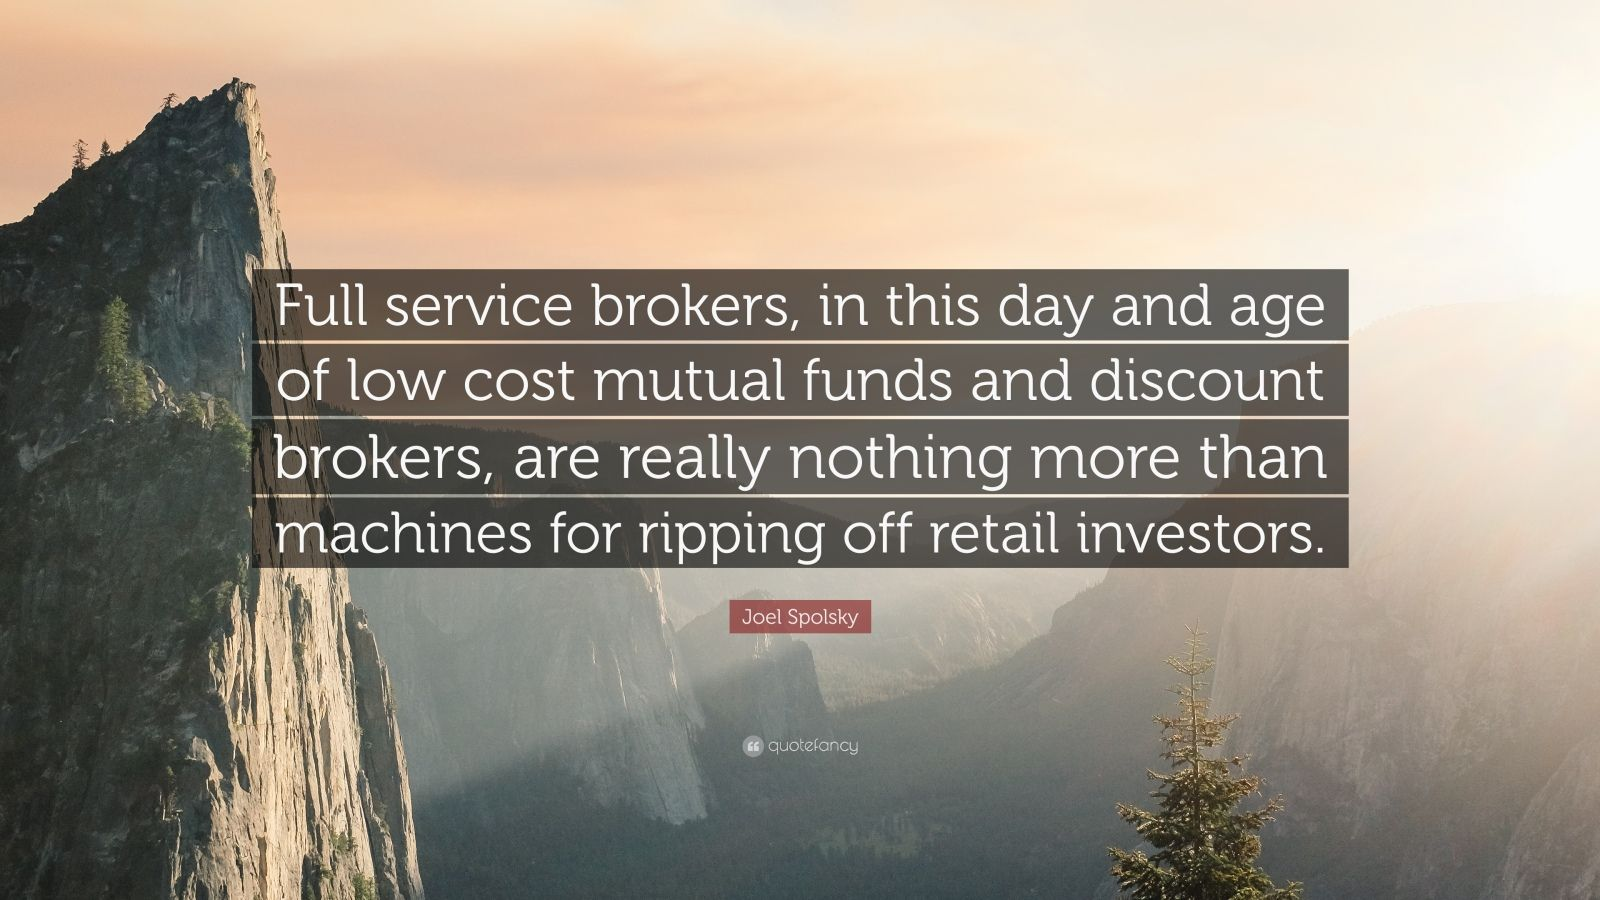 """Joel Spolsky Quote: """"Full service brokers, in this day and age of low cost mutual funds and discount brokers, are really nothing more than machines for ripping off retail investors."""""""